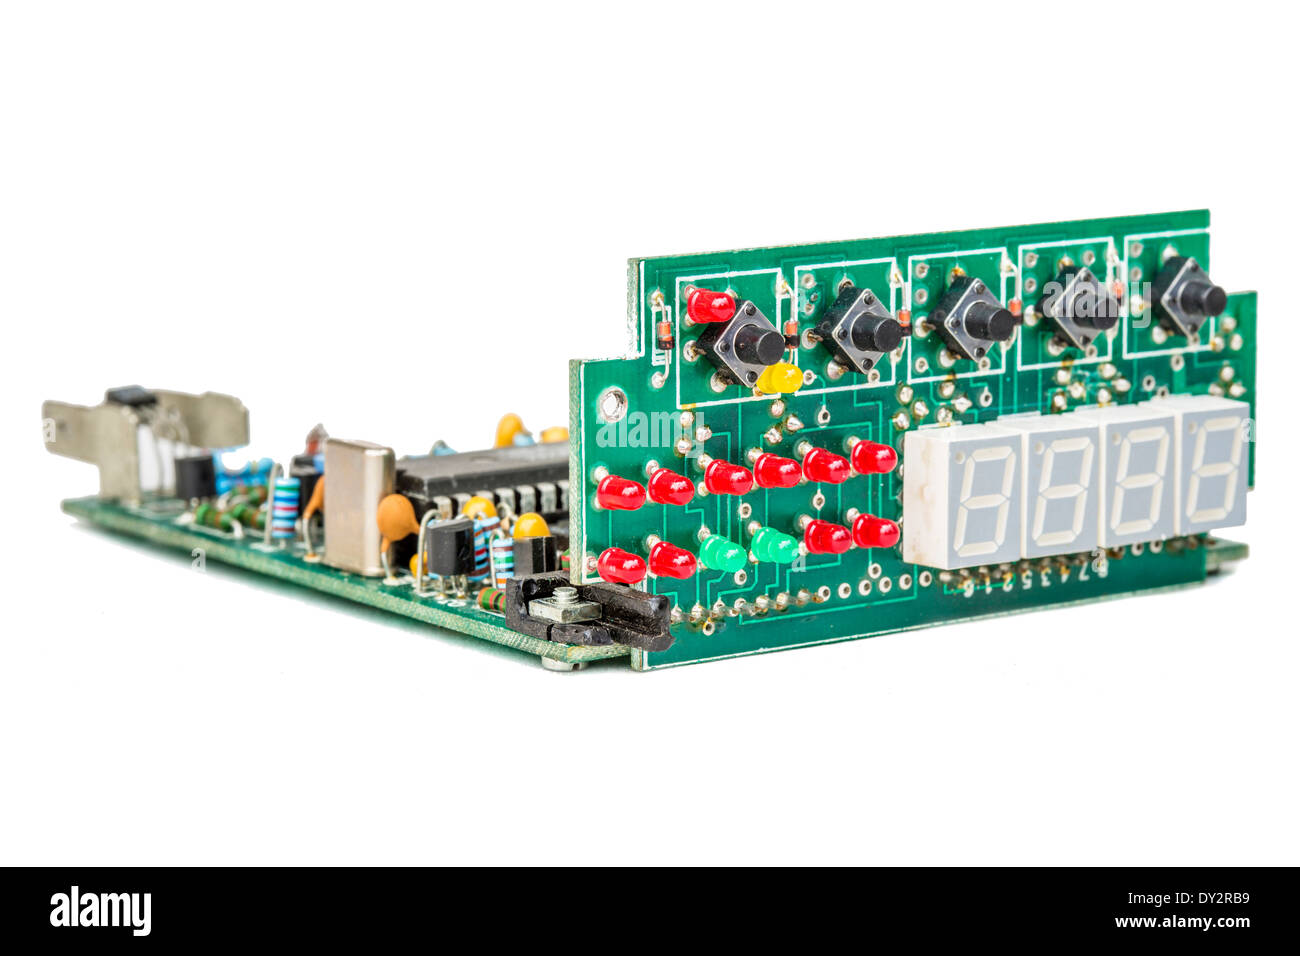 Circuit Board Components Cut Out Stock Images Pictures Alamy Remove Integrated Circuits And From Printed Boards Image